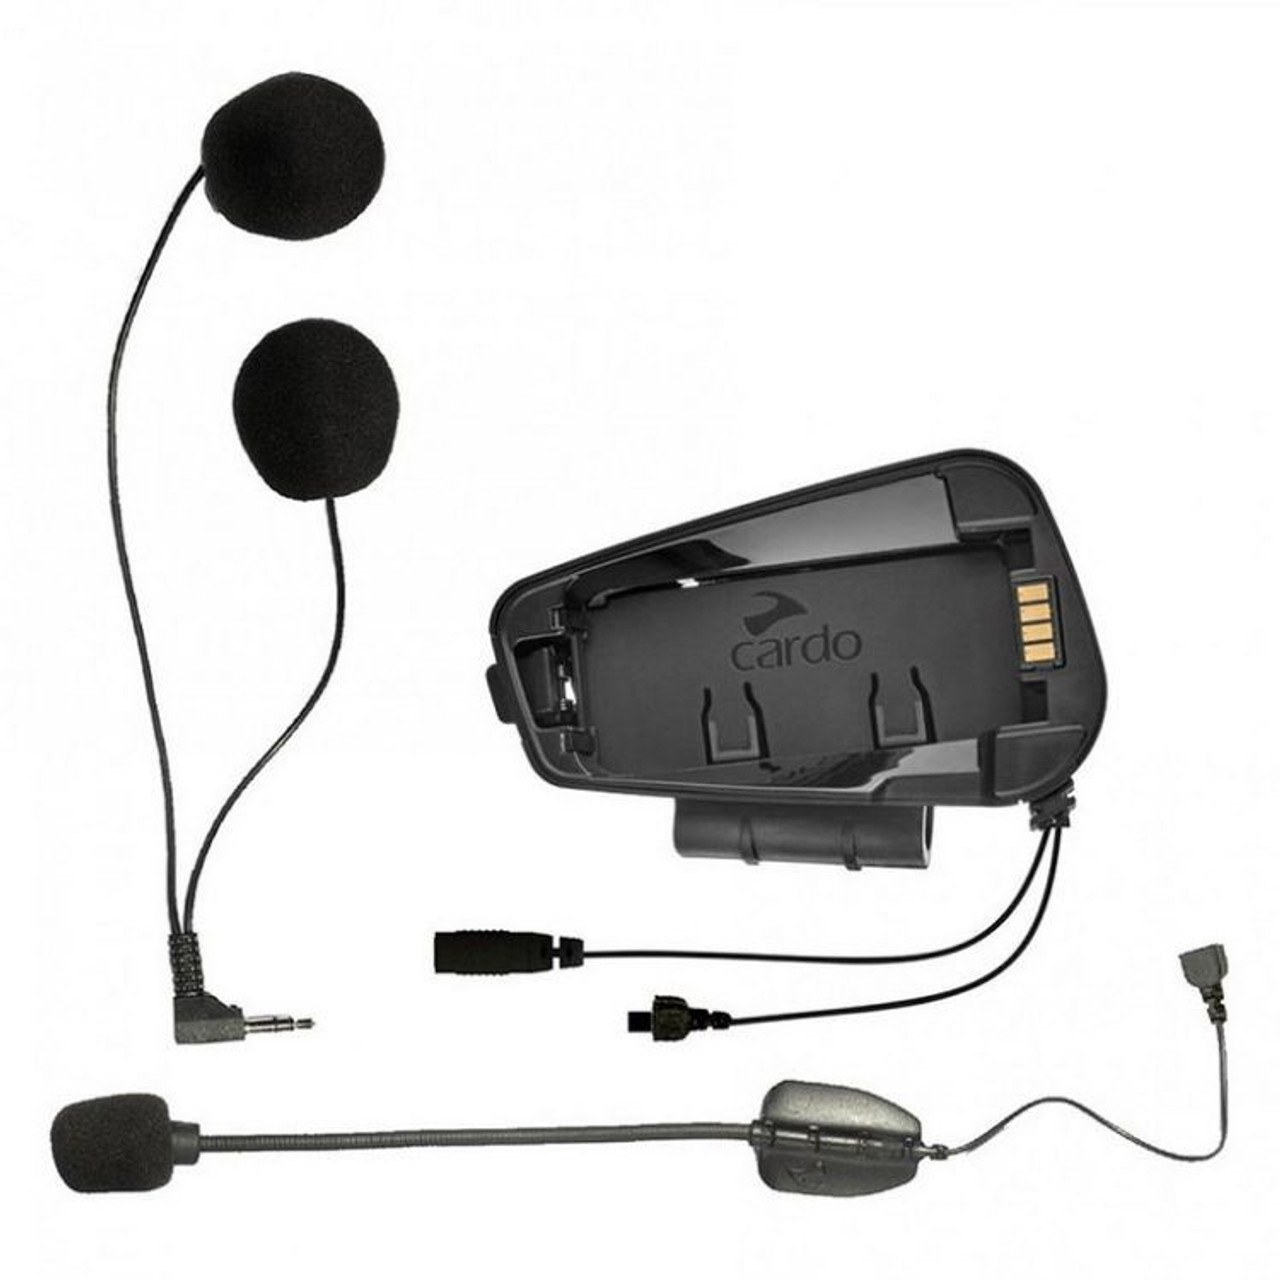 934e72ba1d4 Cardo Scala Rider Audio / Microphone Kit With Hybrid and Corded Booms for  Freecom - SRAK0034 - Sunny Savers Ltd